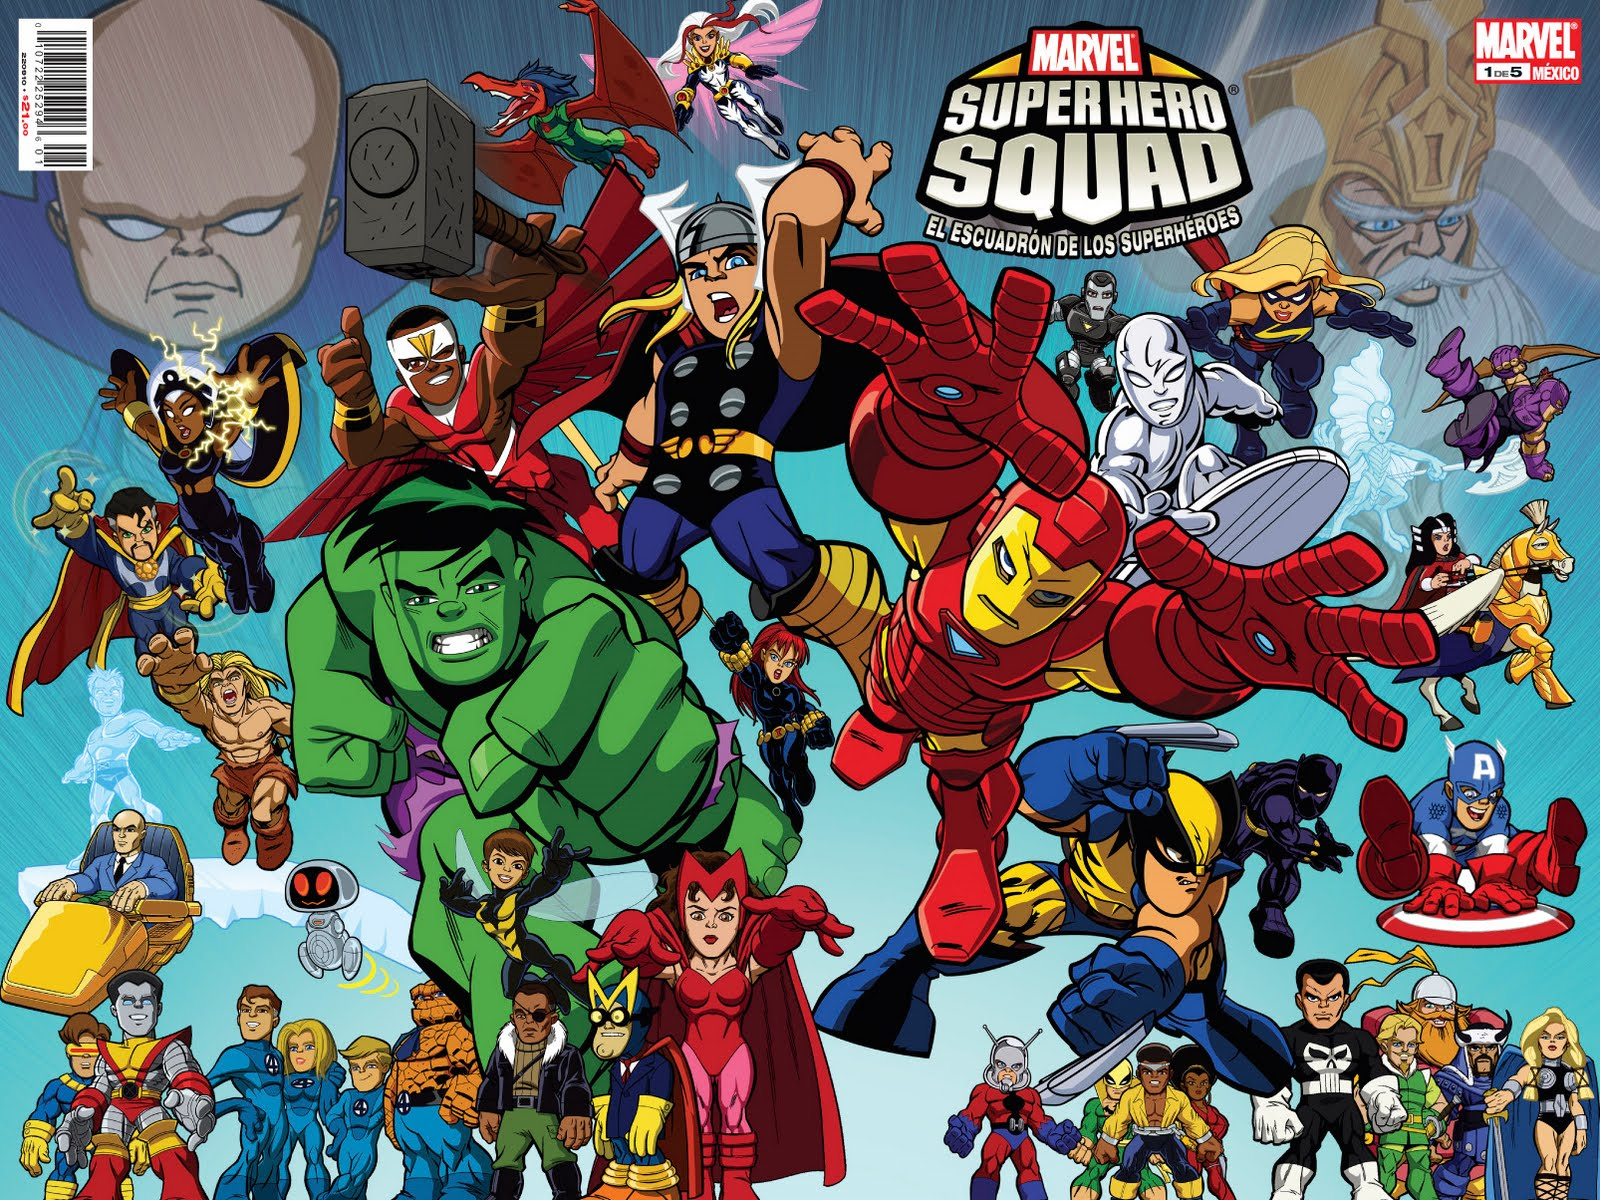 Marvel Super Hero Squad #1 a la venta